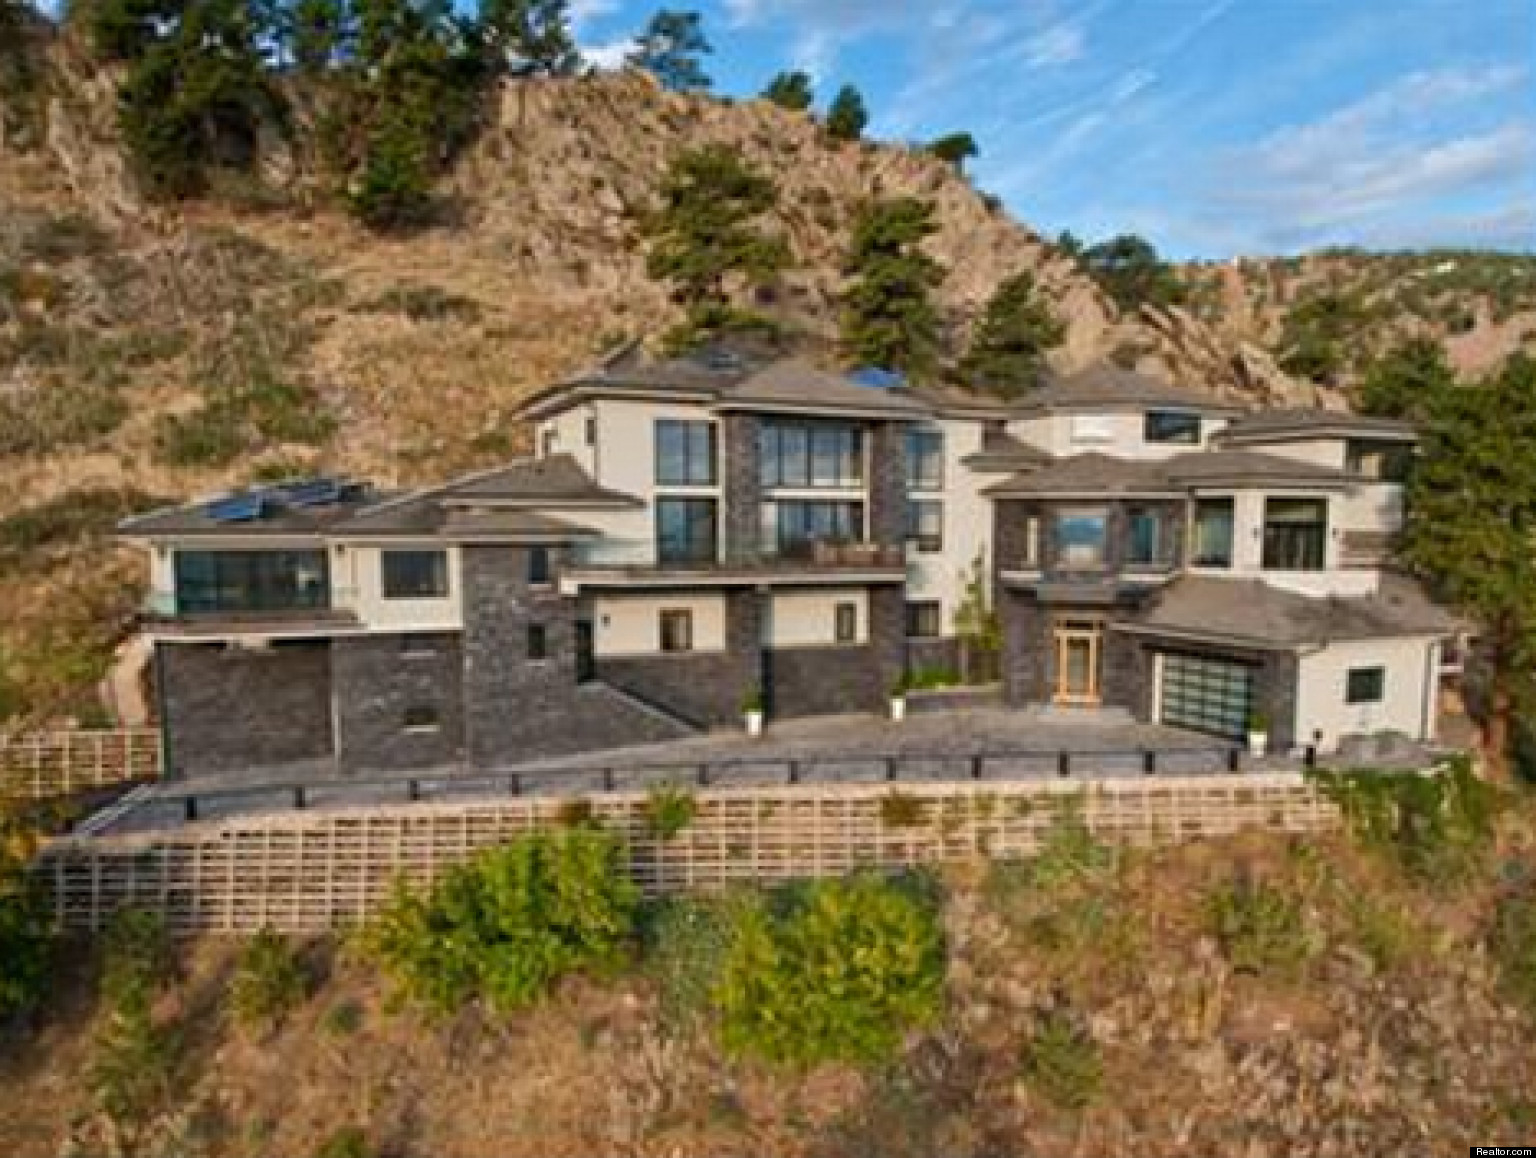 top 10 most expensive homes in boulder colo in 2012 according to realtorcom photos huffpost